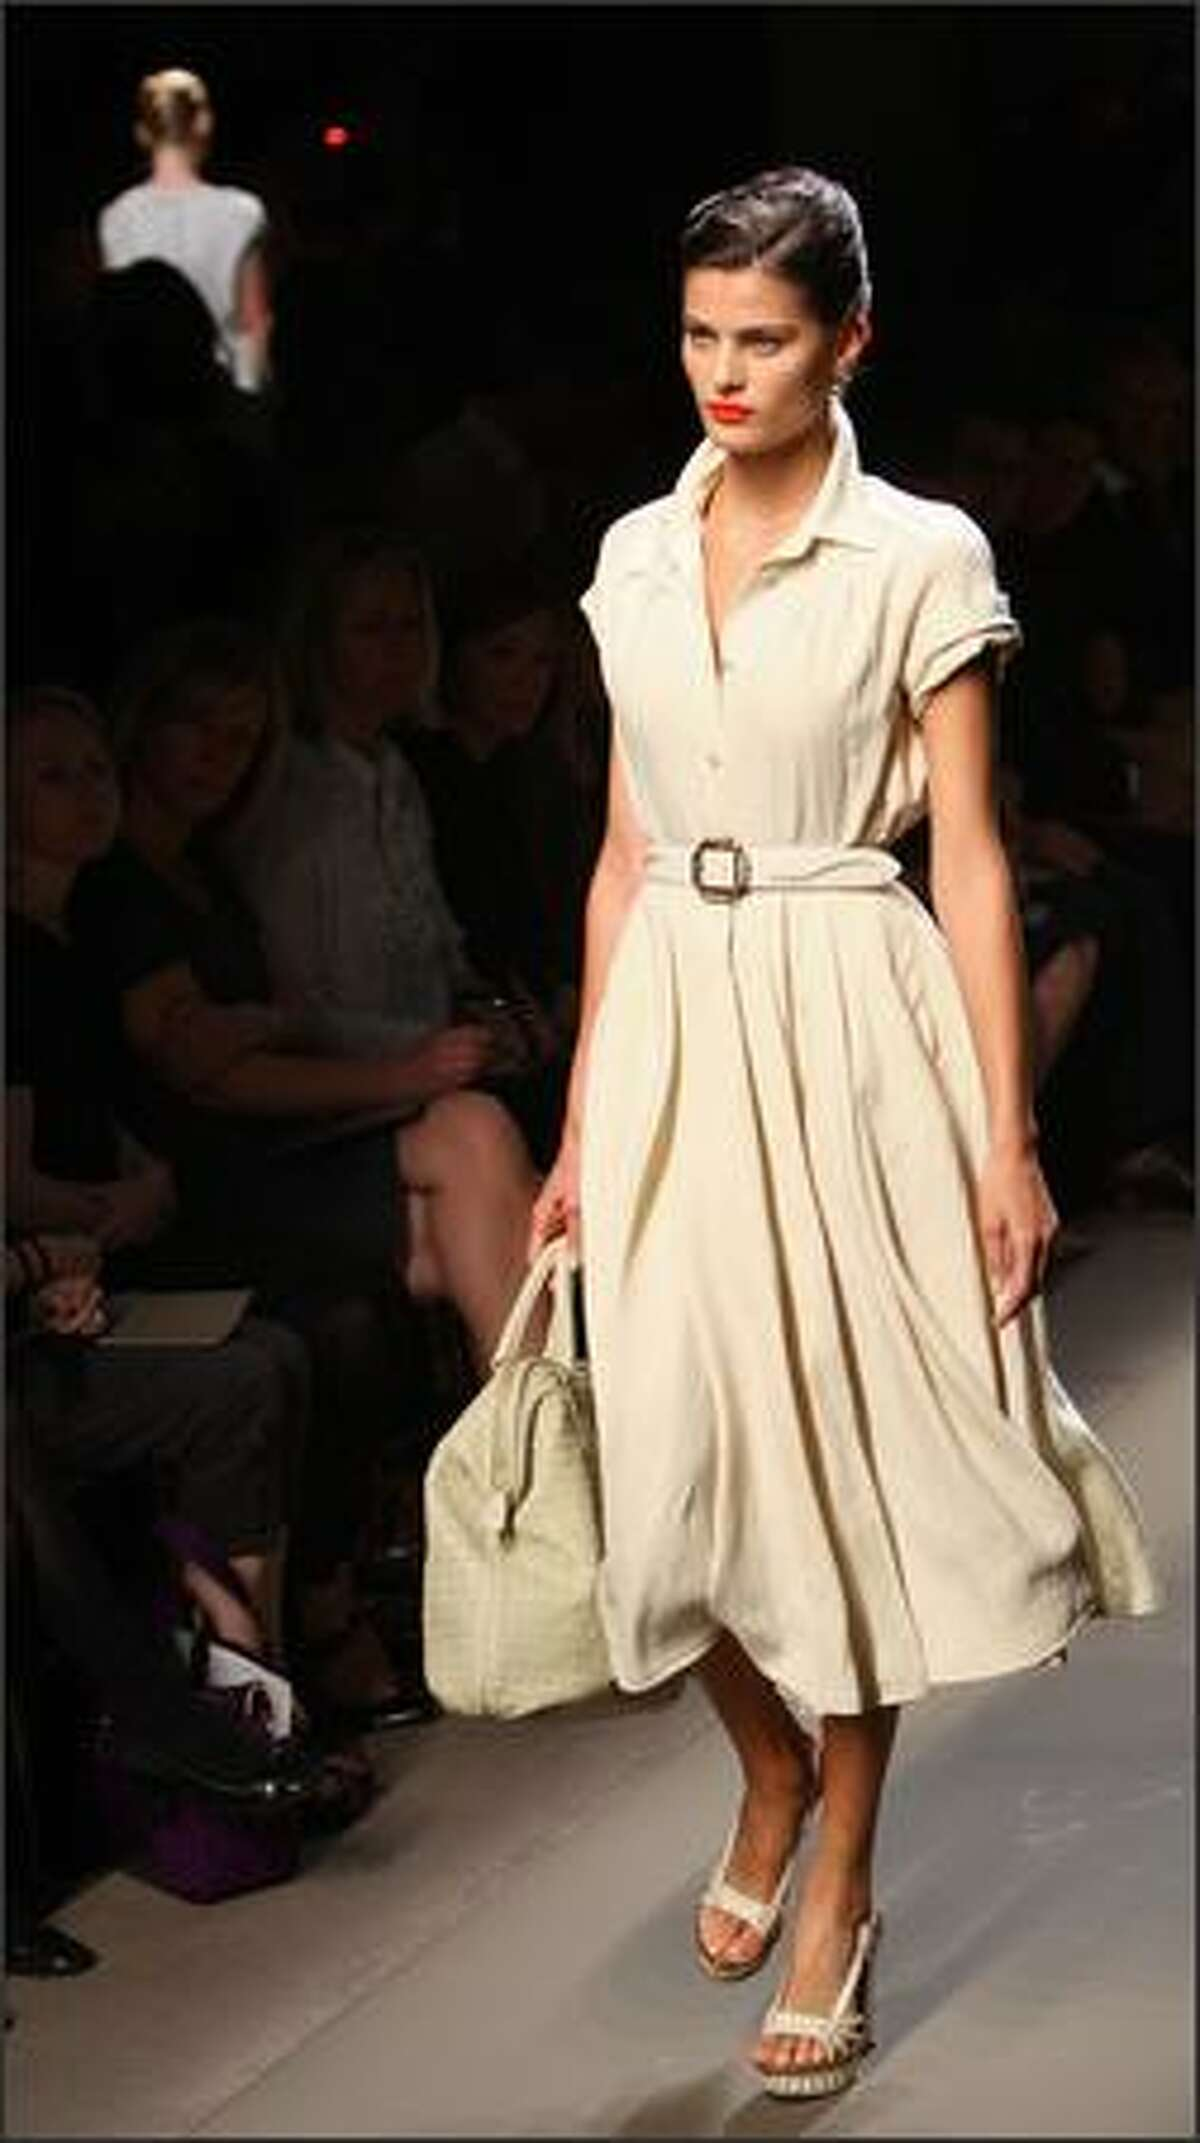 A model presents a creation by Bottega Veneta.